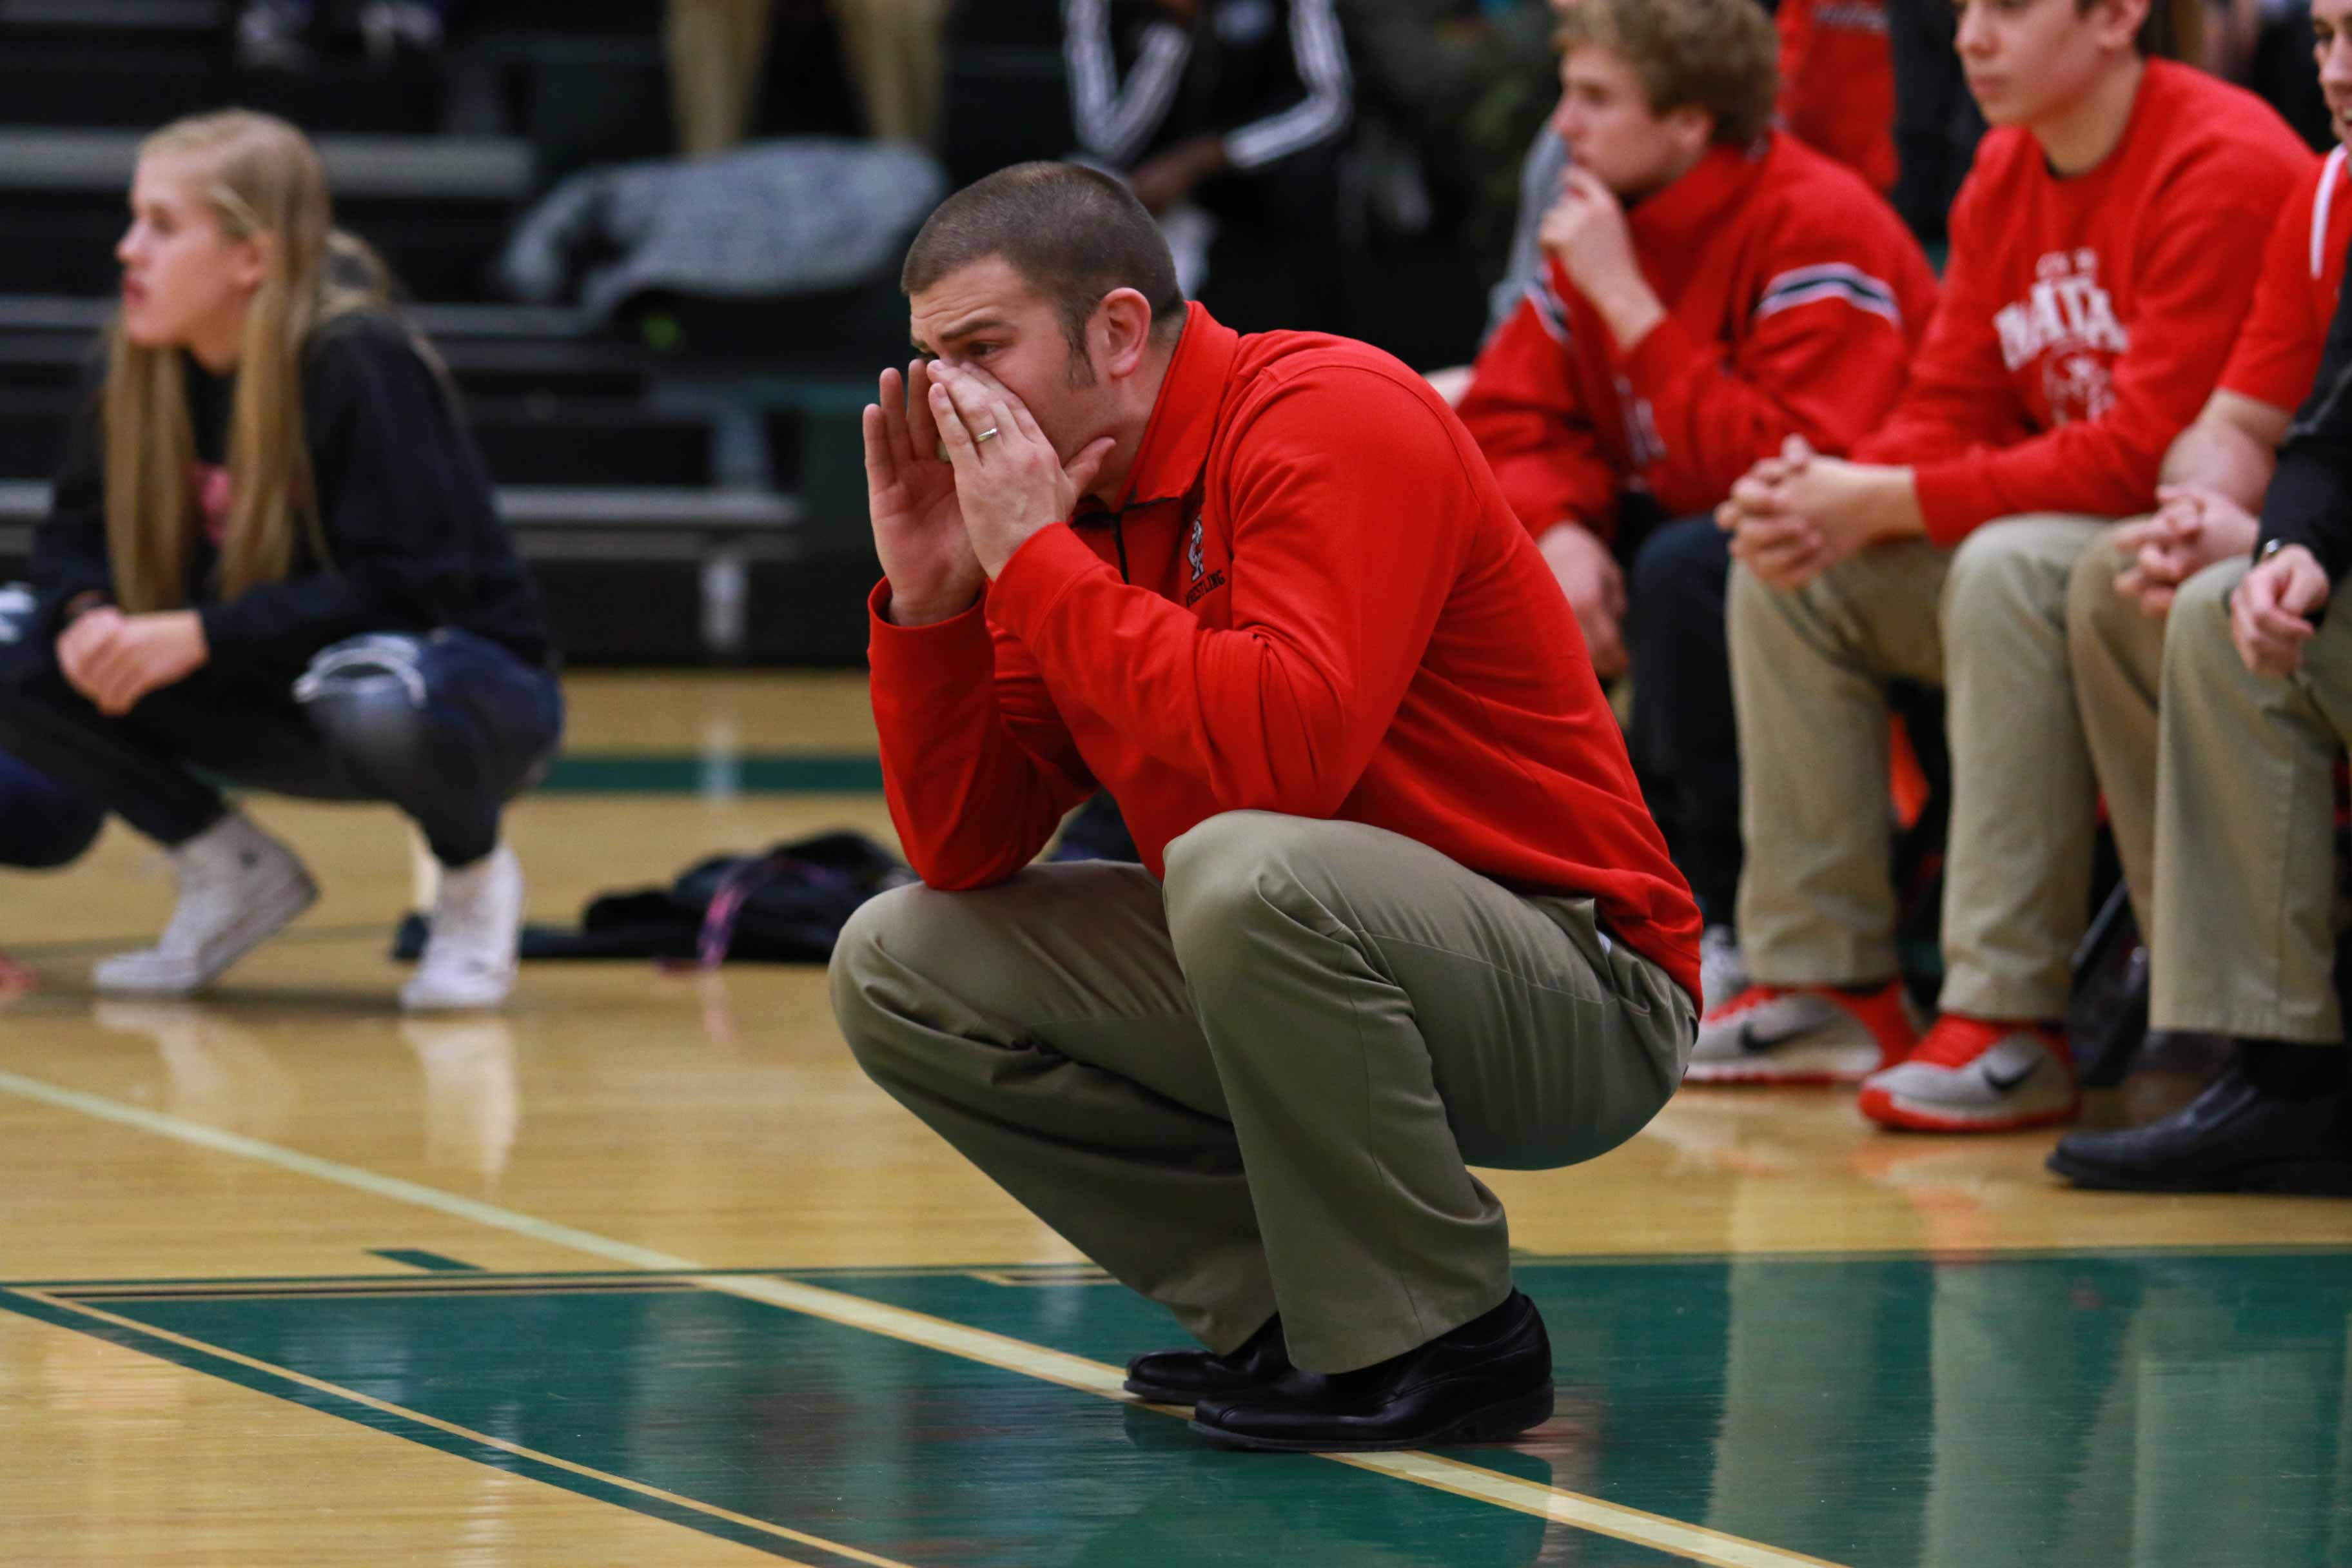 City+High+wrestling+coach+Cory+Connell+yells+instructions+during+a+heated+bout+against+West+High%27s+Trojans++on+January+7th%2C+2016.